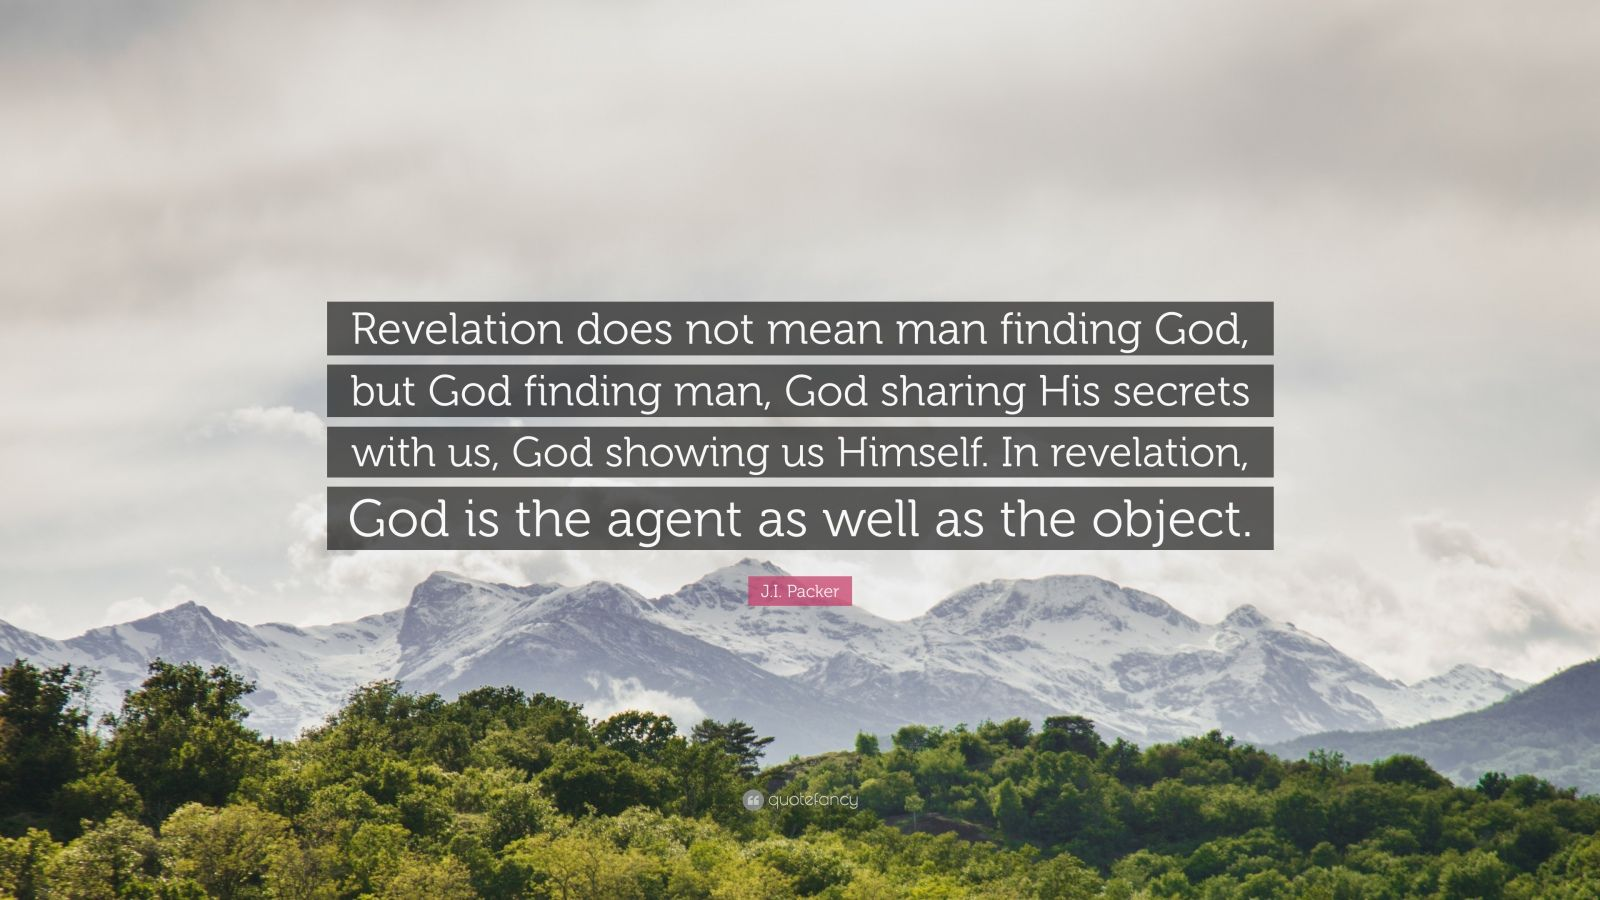 """J.I. Packer Quote: """"Revelation does not mean man finding God, but God finding man, God sharing His secrets with us, God showing us Himself. In revelation, God is the agent as well as the object."""""""